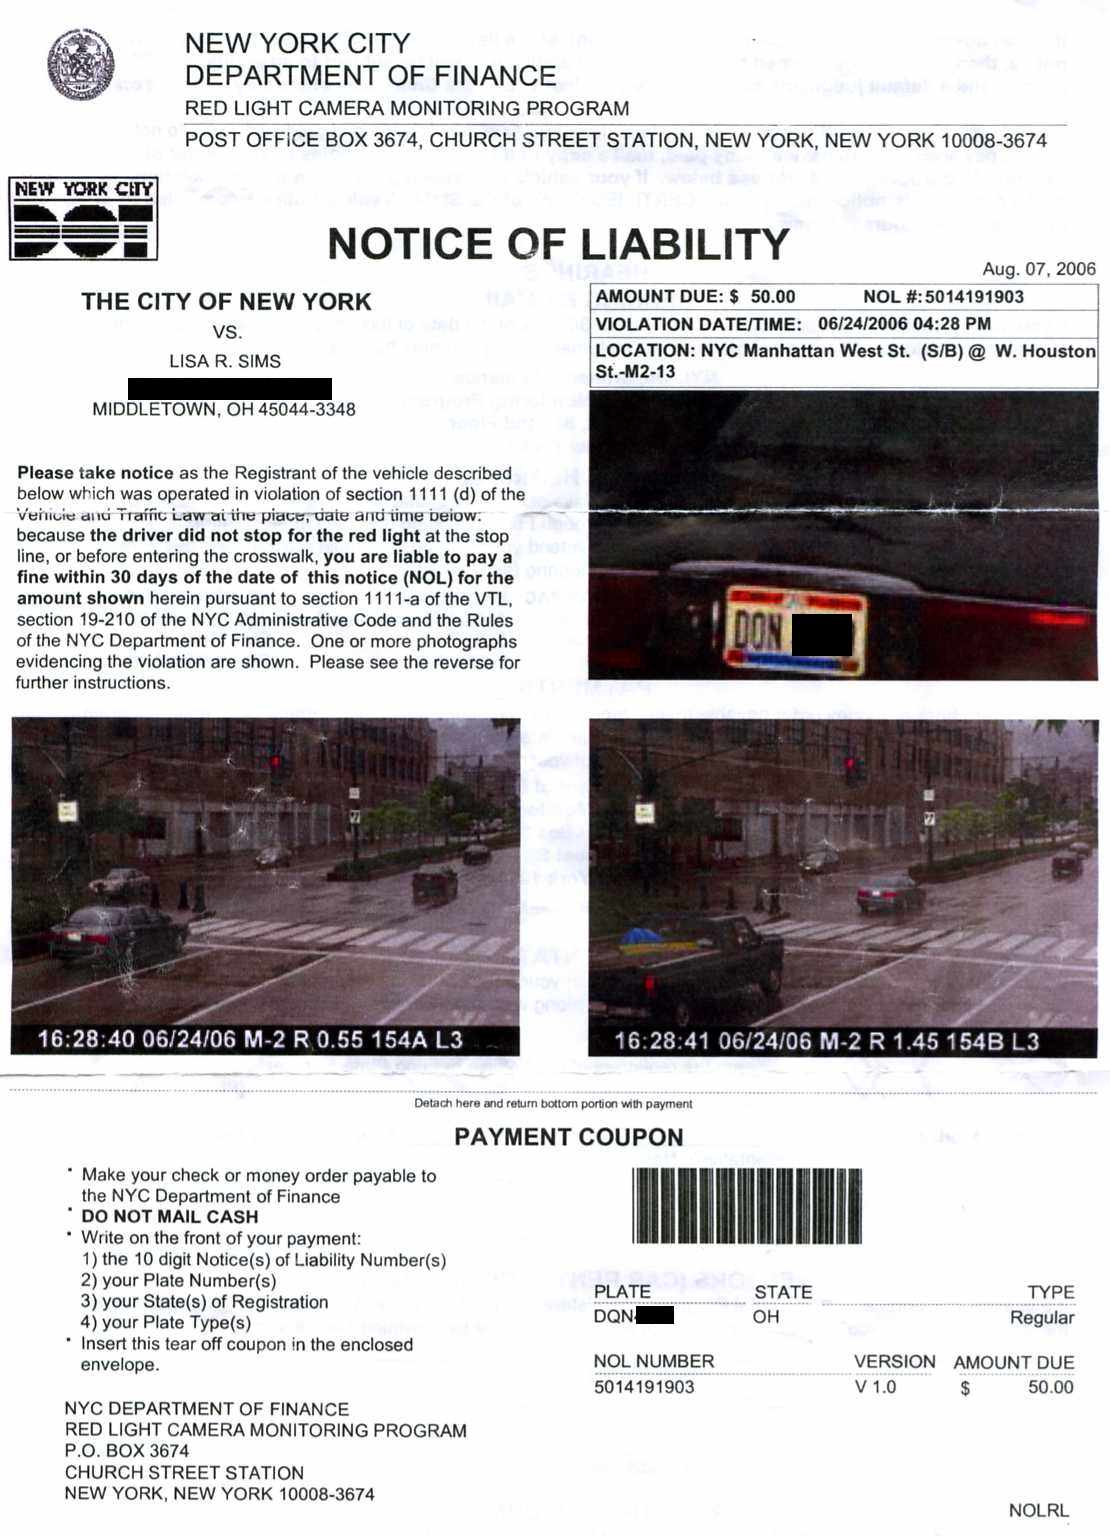 Amazing Fight A Red Light Camera Ticket California Aquariumwalls Org Great Pictures